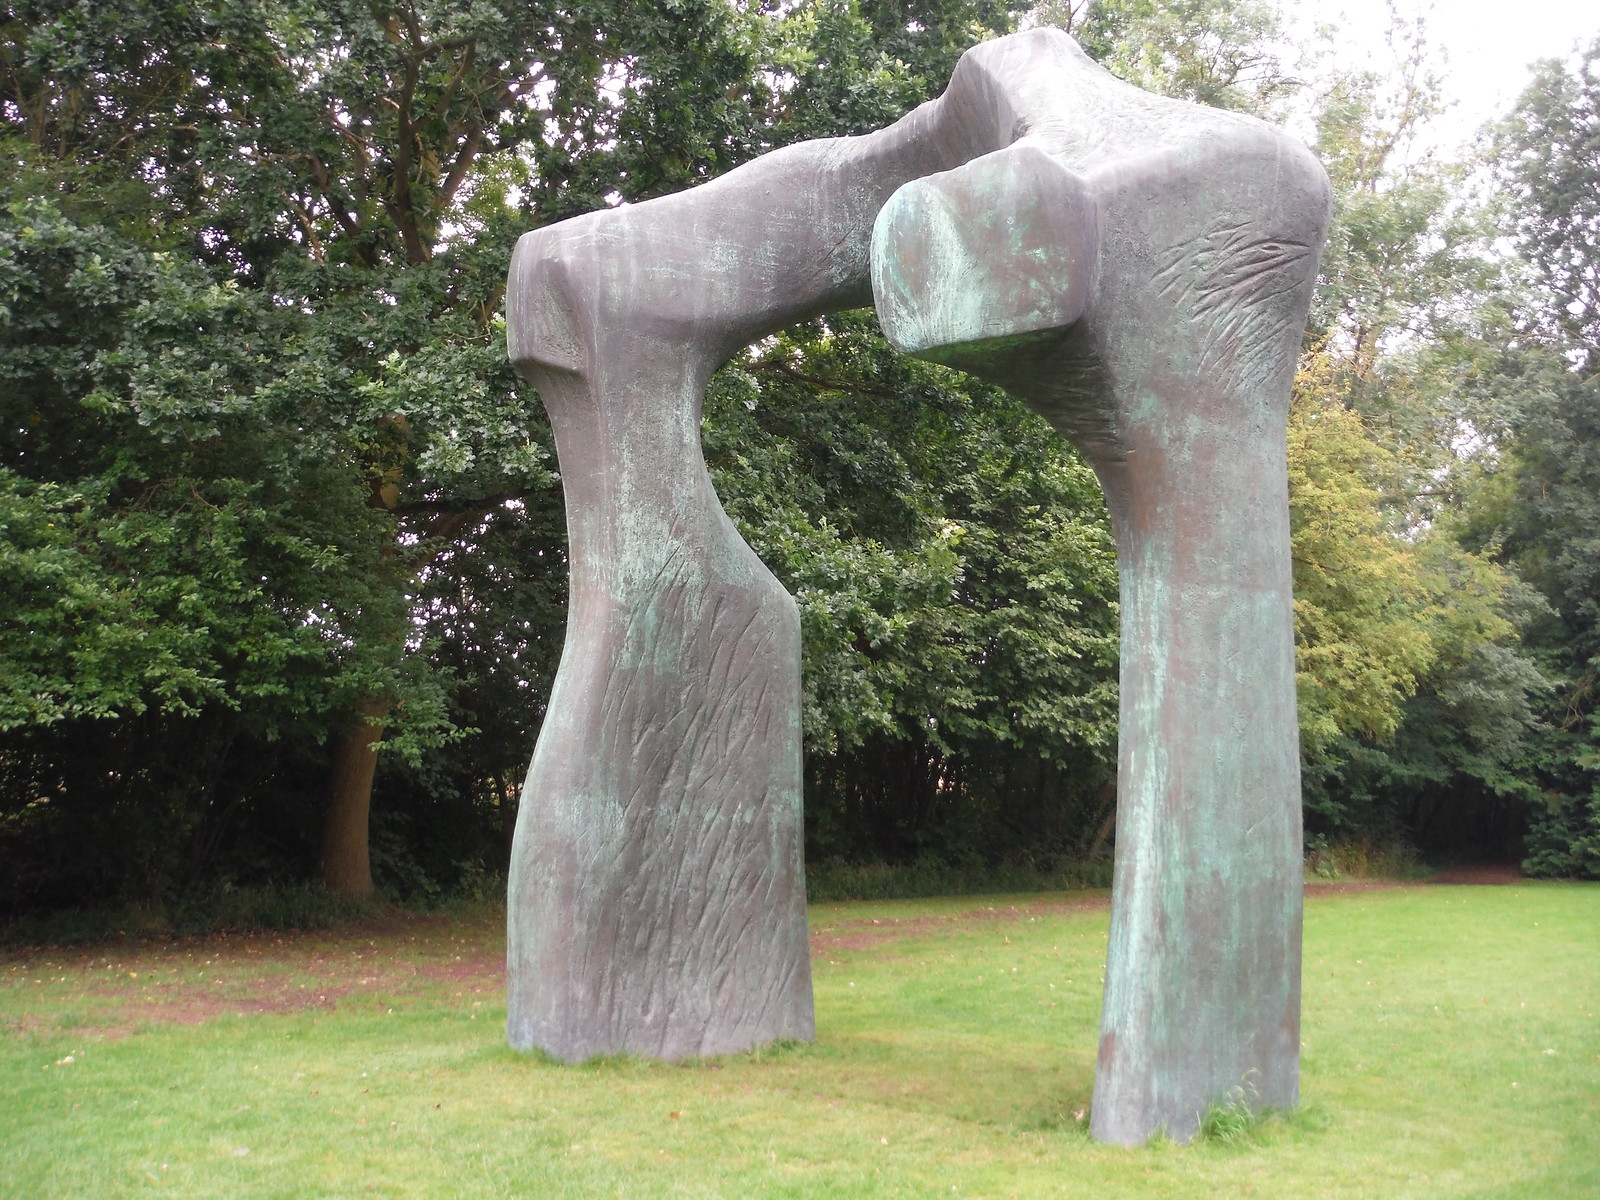 The Arch (1969), Sideview SWC Walk 164 Roydon to Sawbridgeworth via Henry Moore Foundation